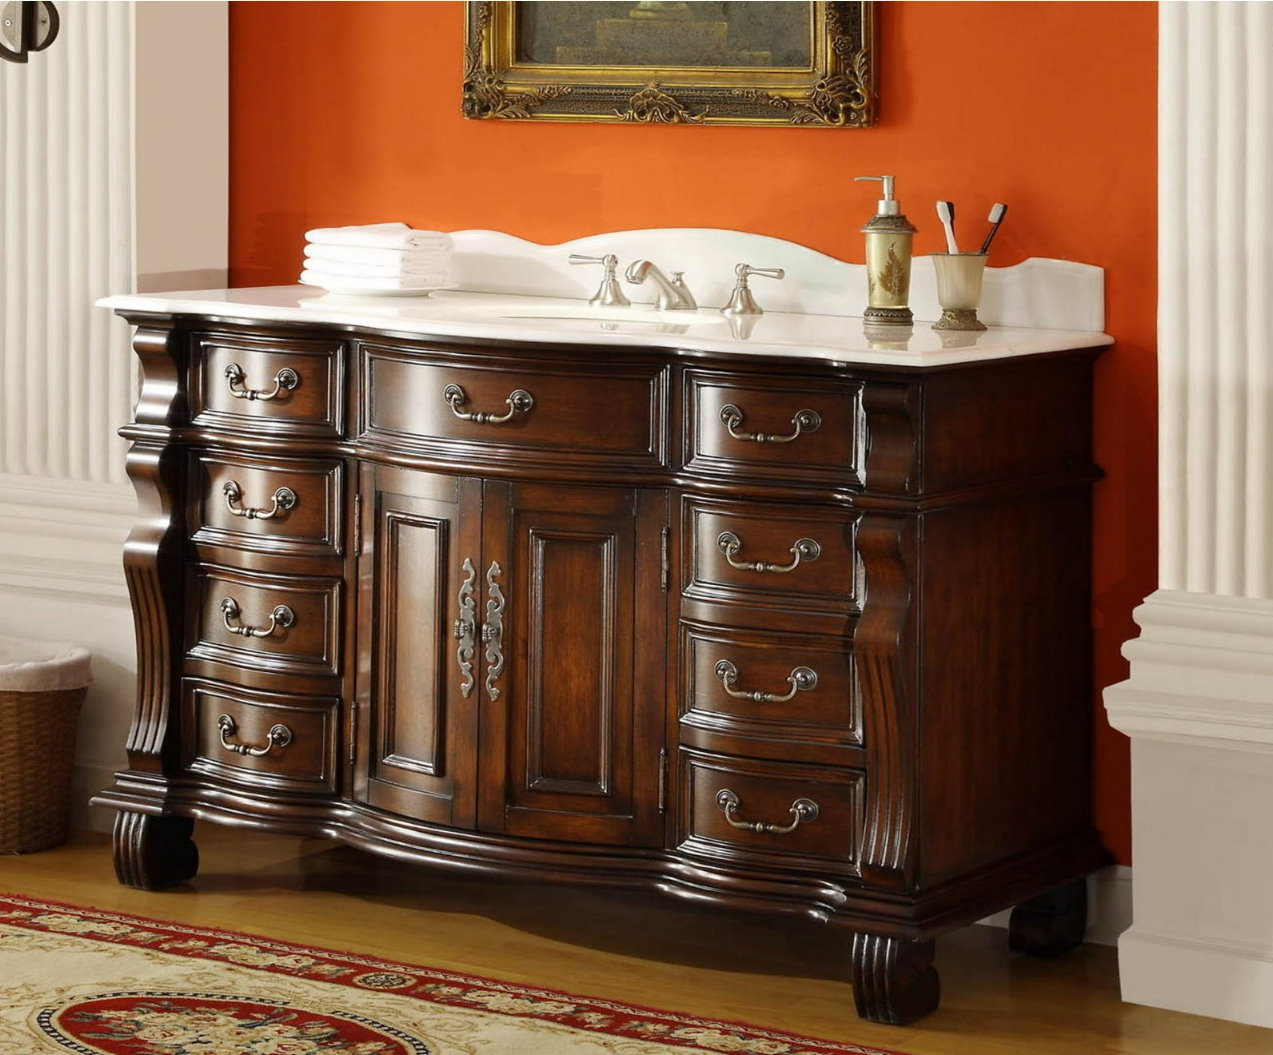 60 inch single sink bathroom vanity 8 drawers medium brown - 72 inch single sink bathroom vanity ...